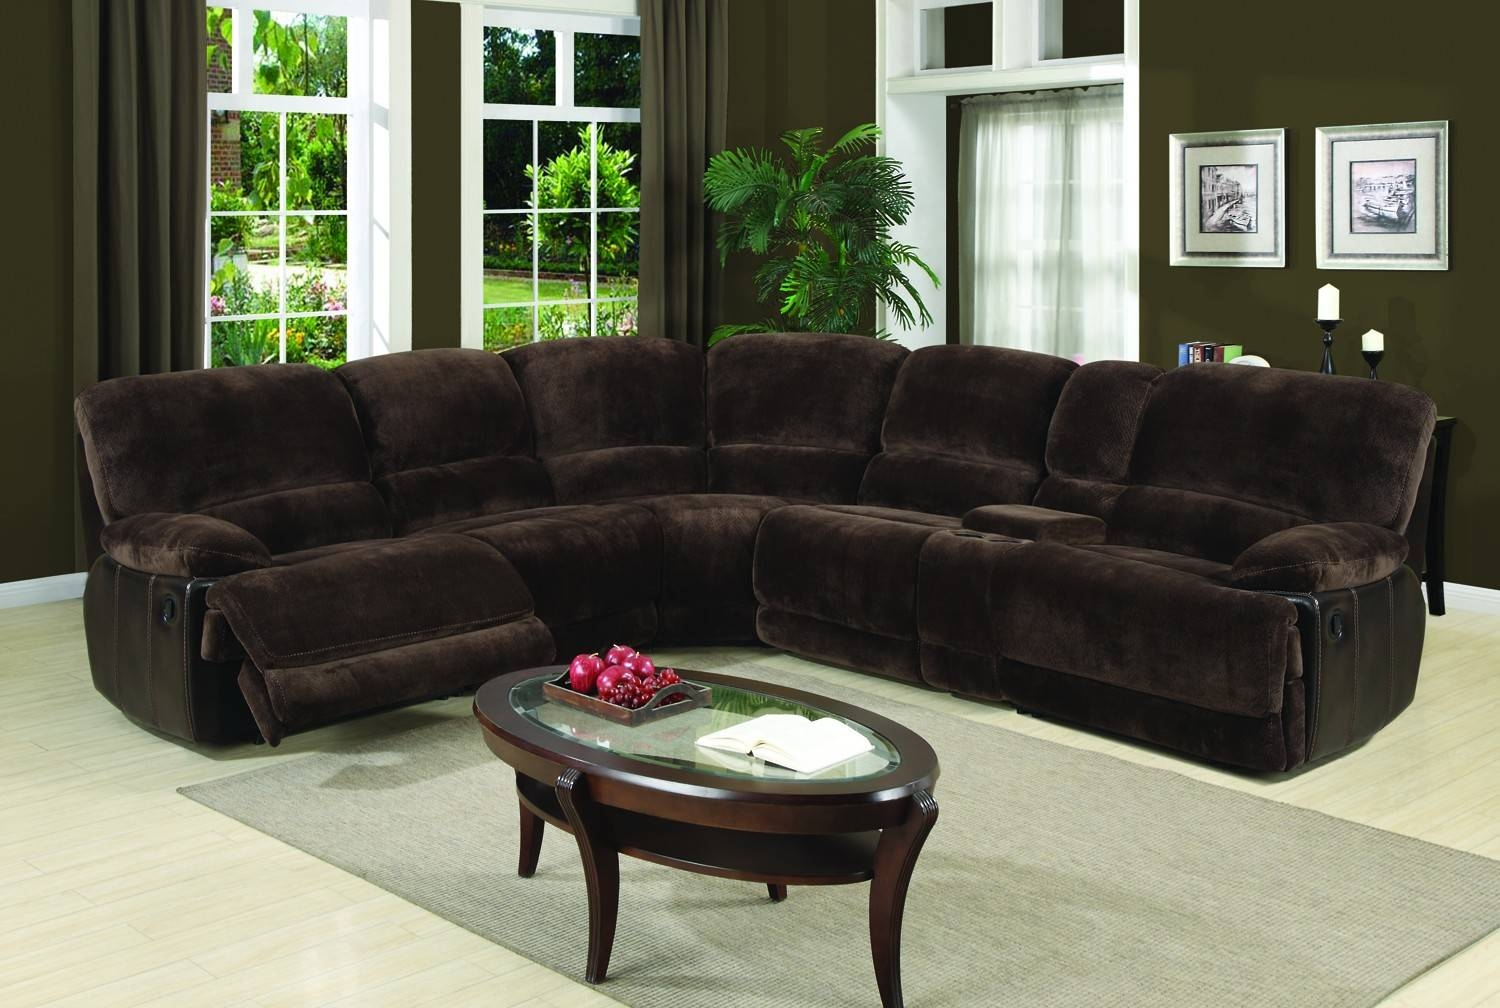 Eli Dark Brown 6-Piece Sectional Sofa For $1,698.00 - Furnitureusa in 6 Piece Sectional Sofas Couches (Image 6 of 15)